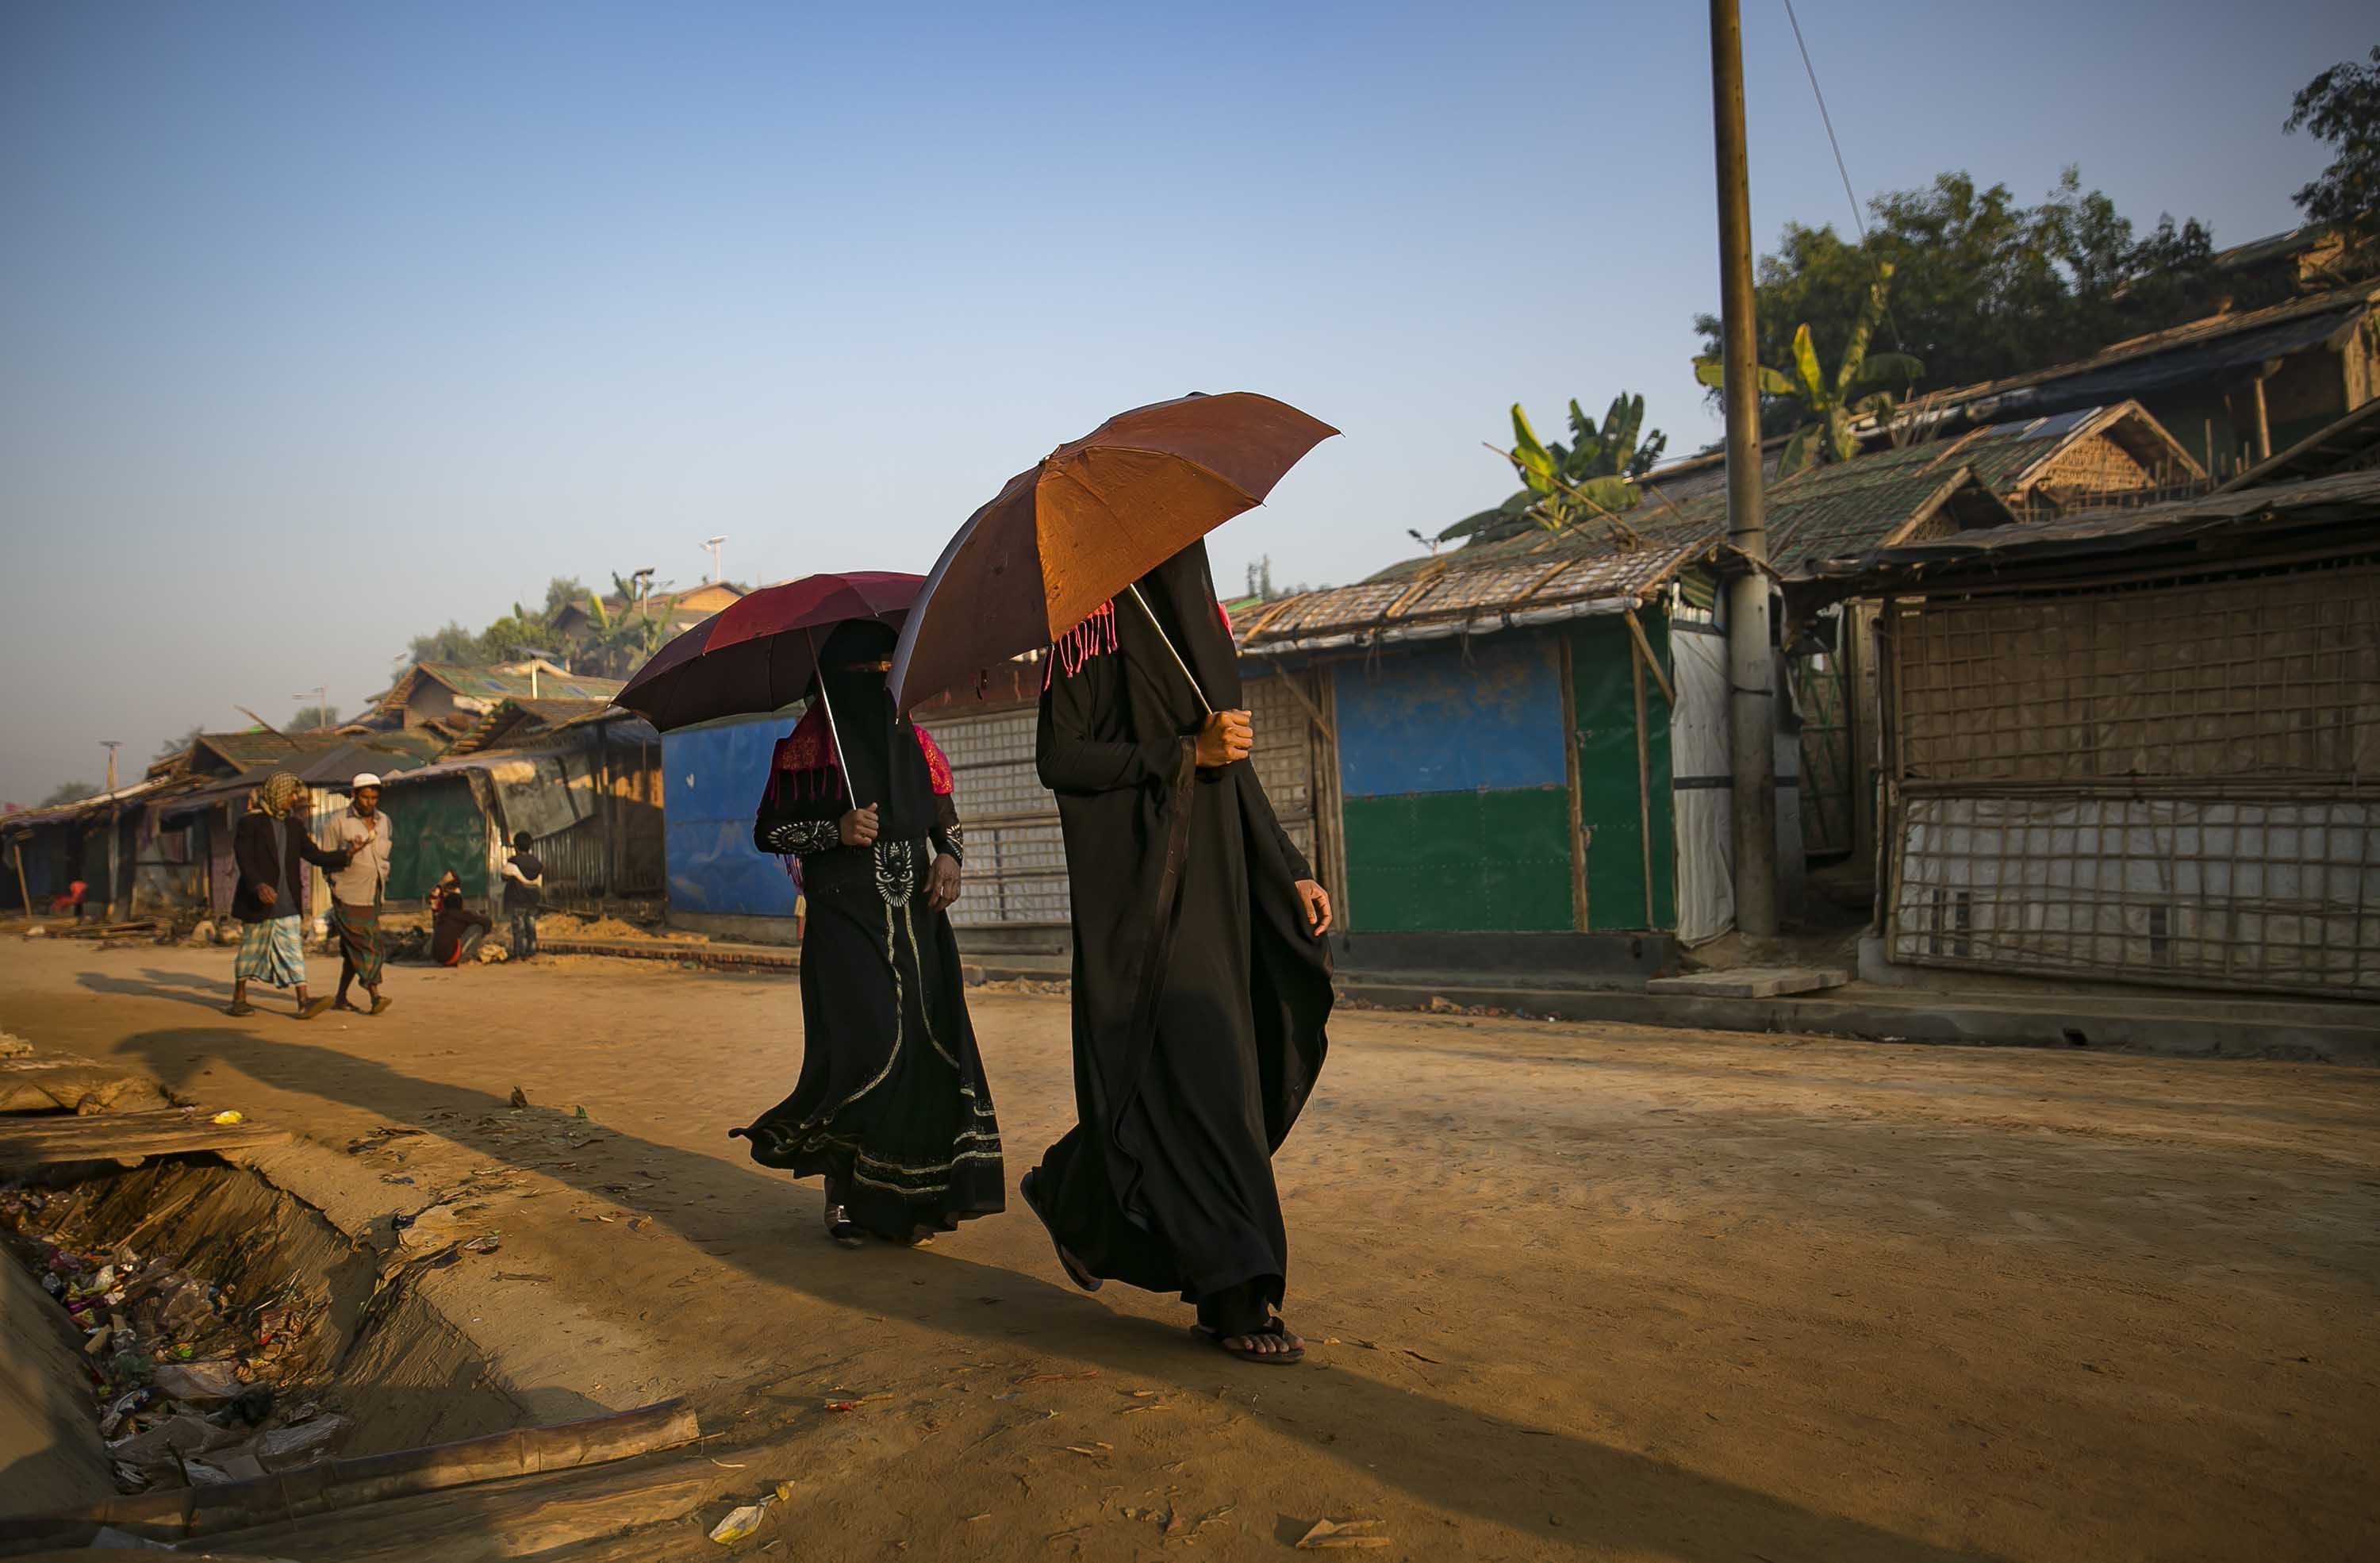 Rohingya women at a refugee camp in Cox's Bazar, Bangladesh, in December 2019.